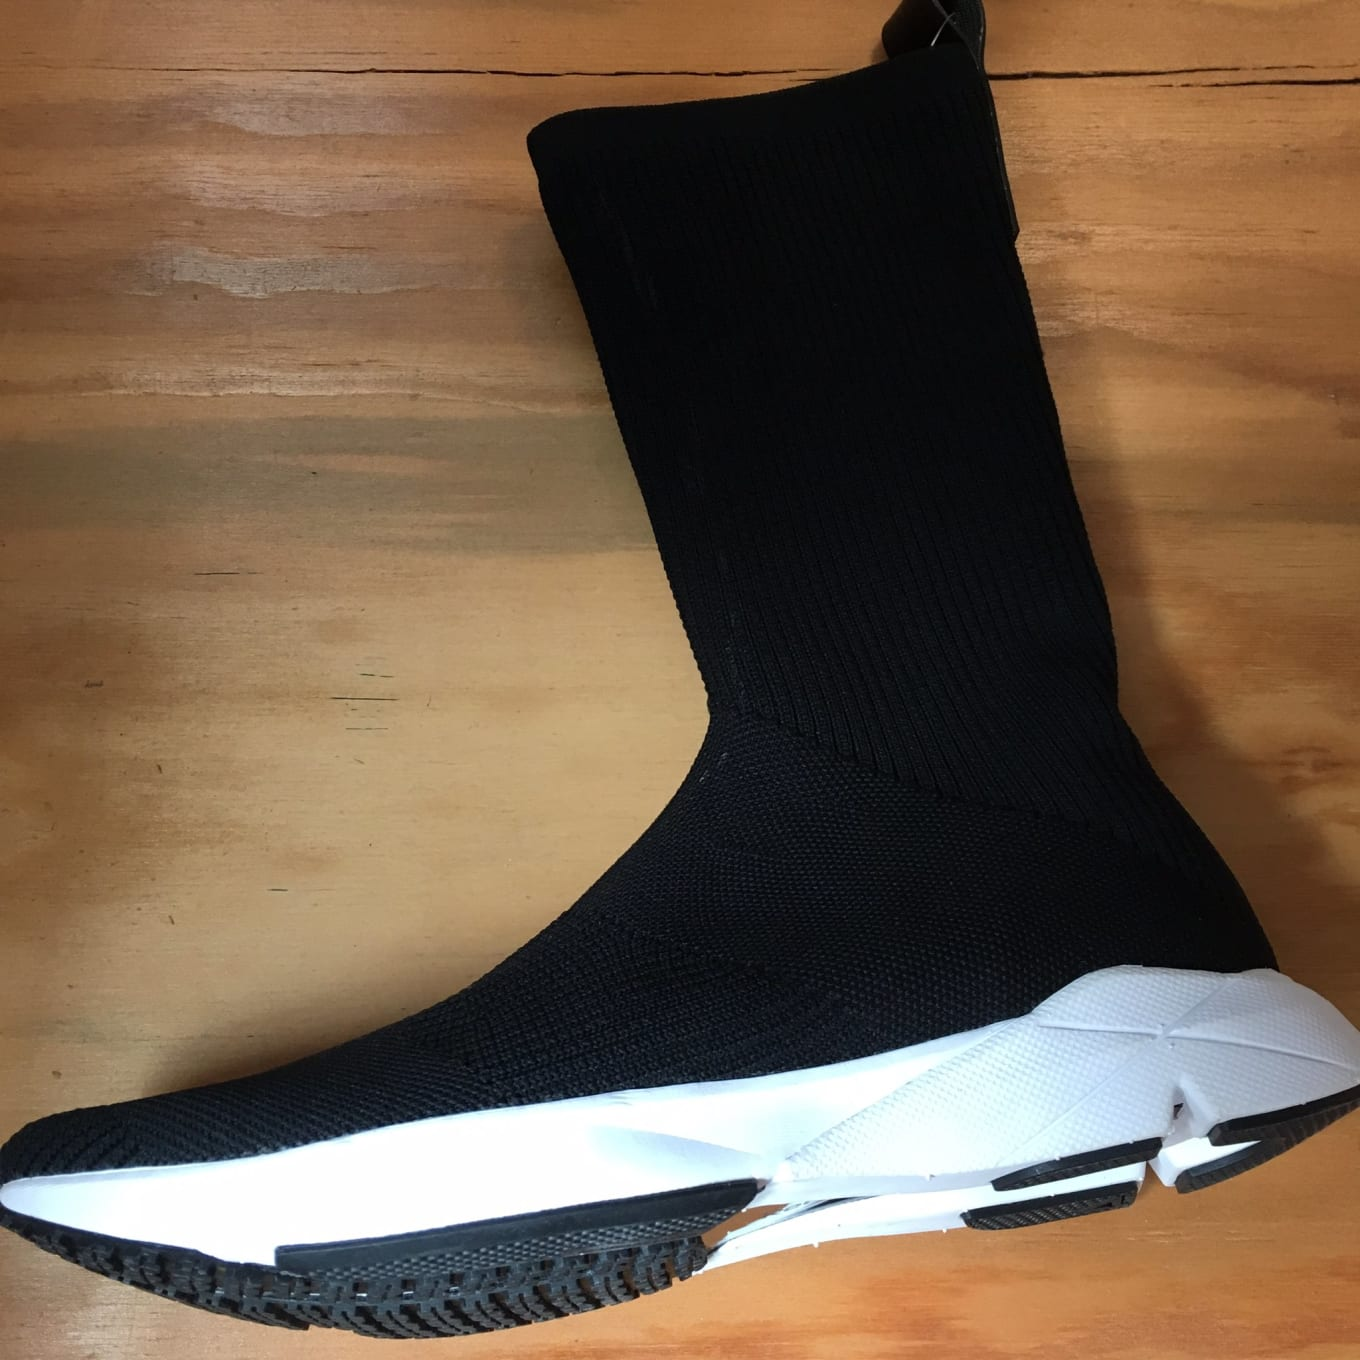 Sole Collector Own Runner Sock Reebok Makes Its qygXXZ